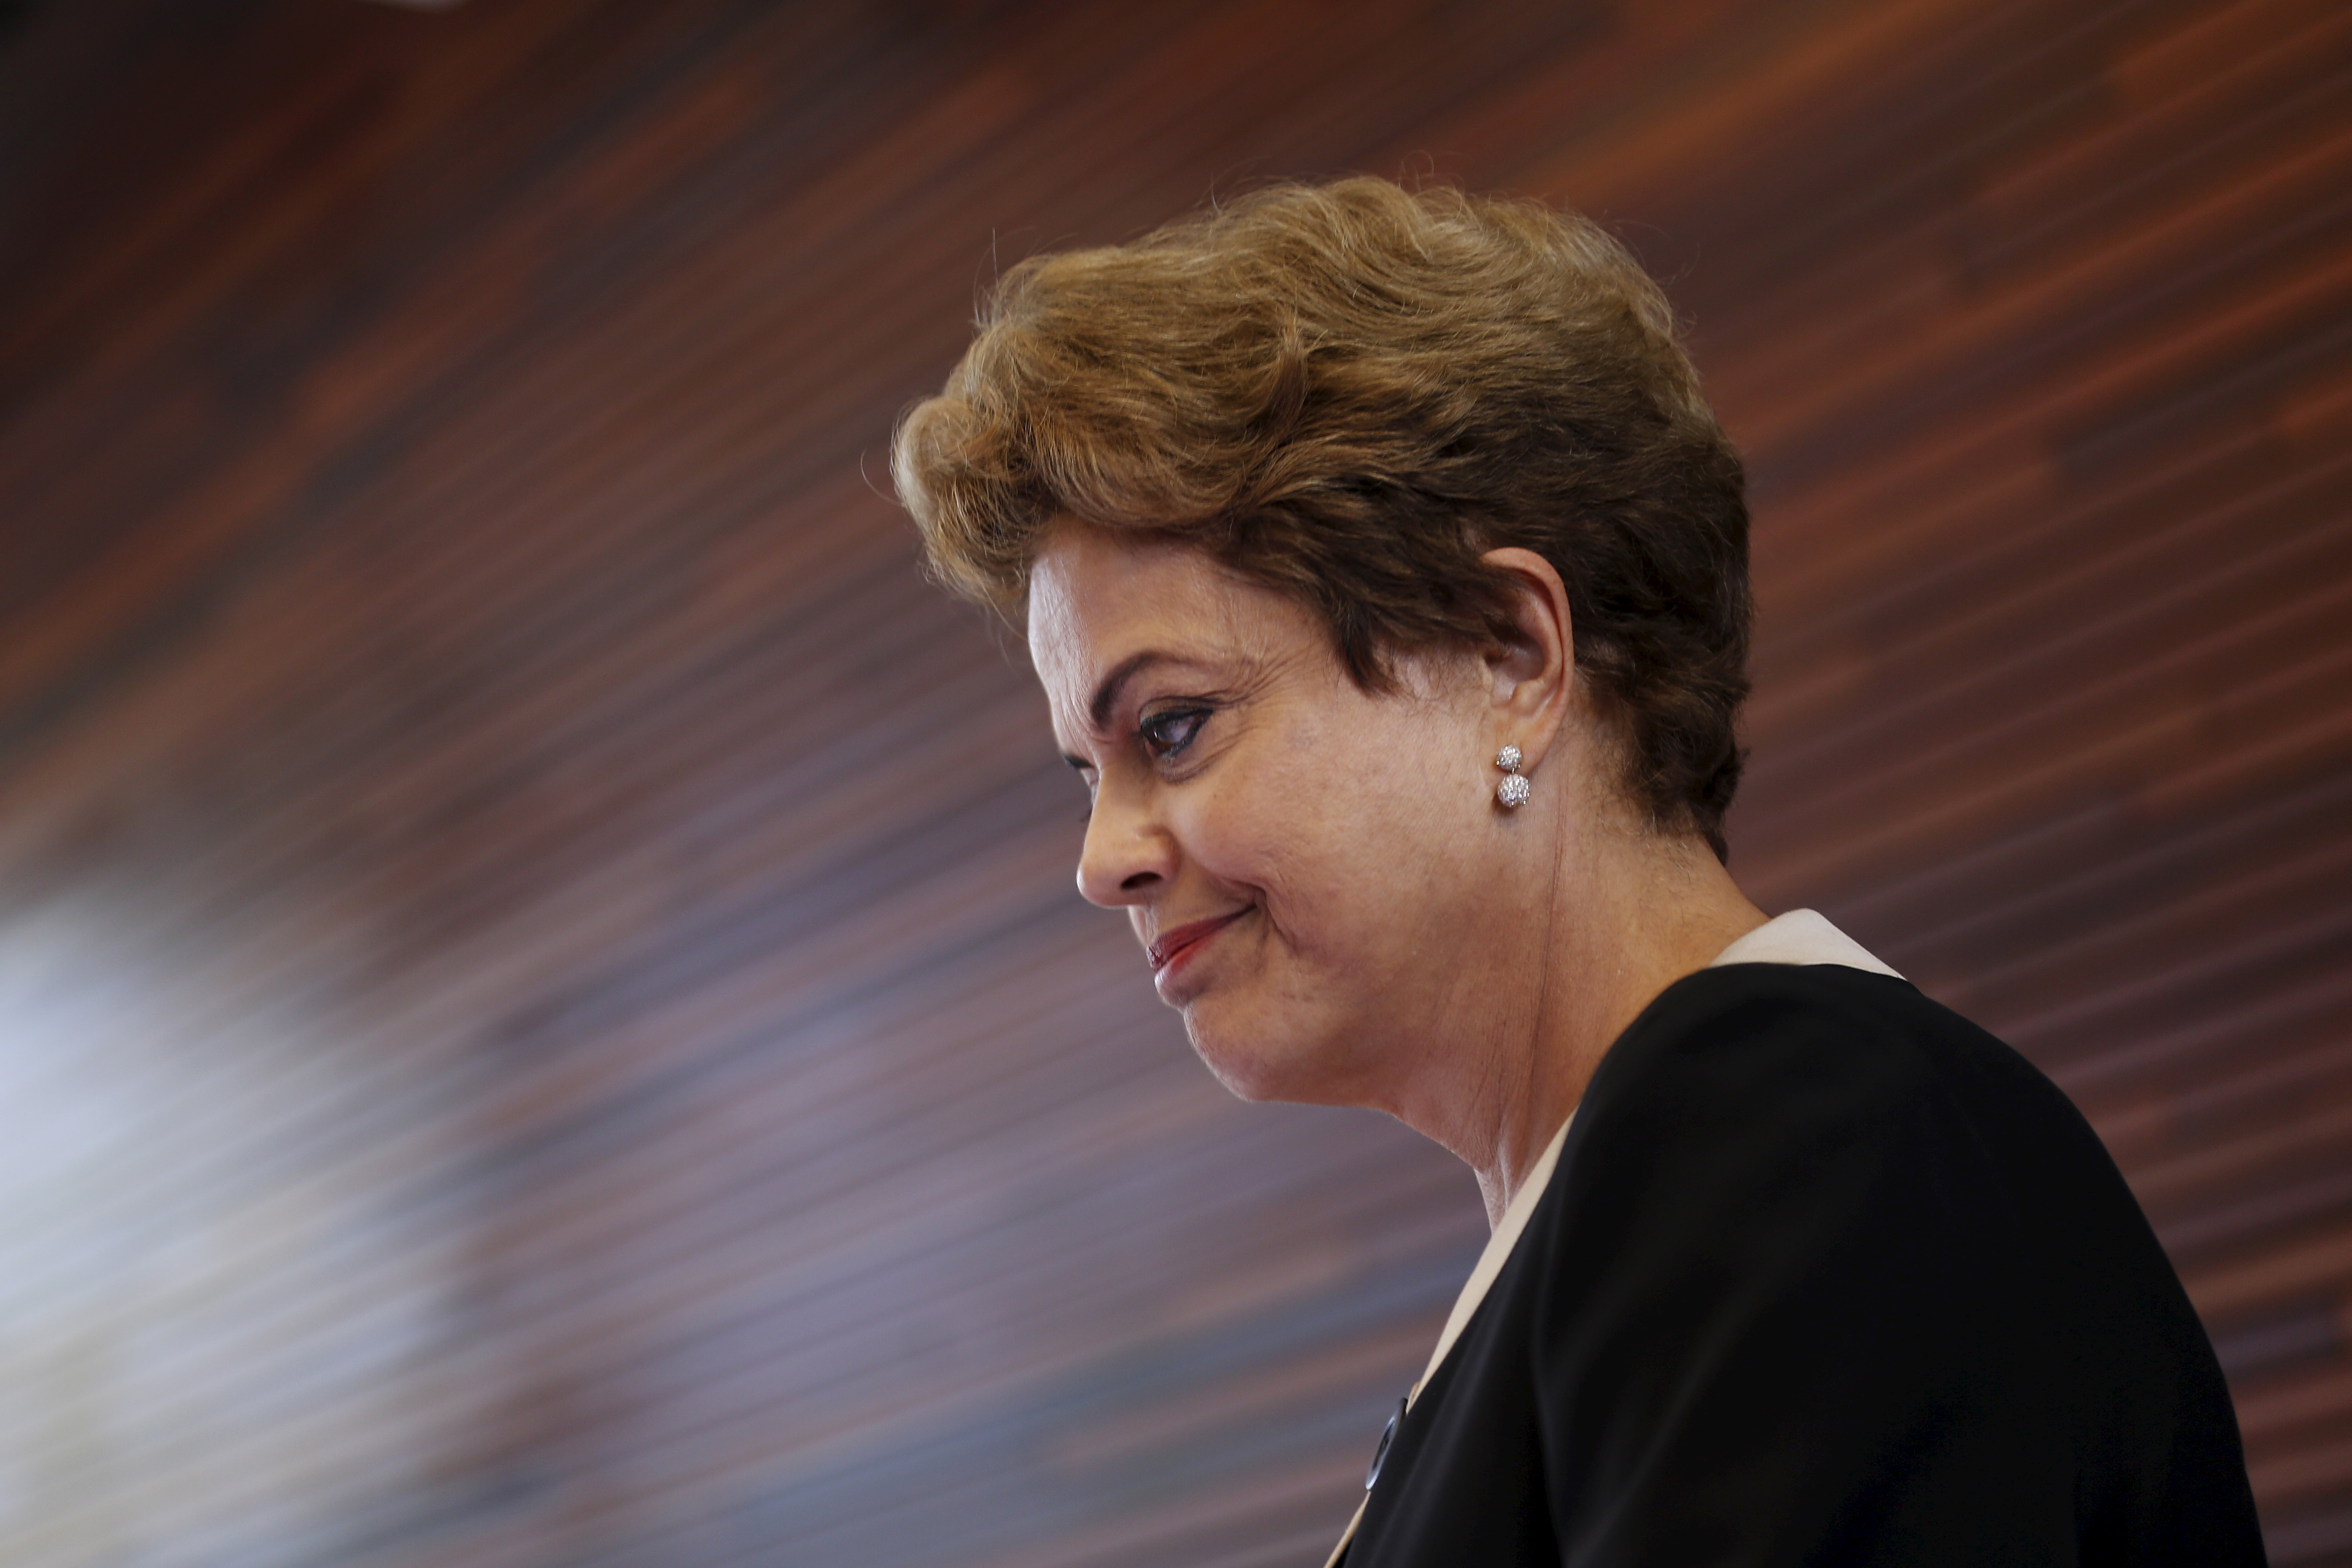 Brazil President Dilma Rousseff arrives to speak to members of the media during a visit at Google headquarters in Mountain View, California, July 1, 2015.